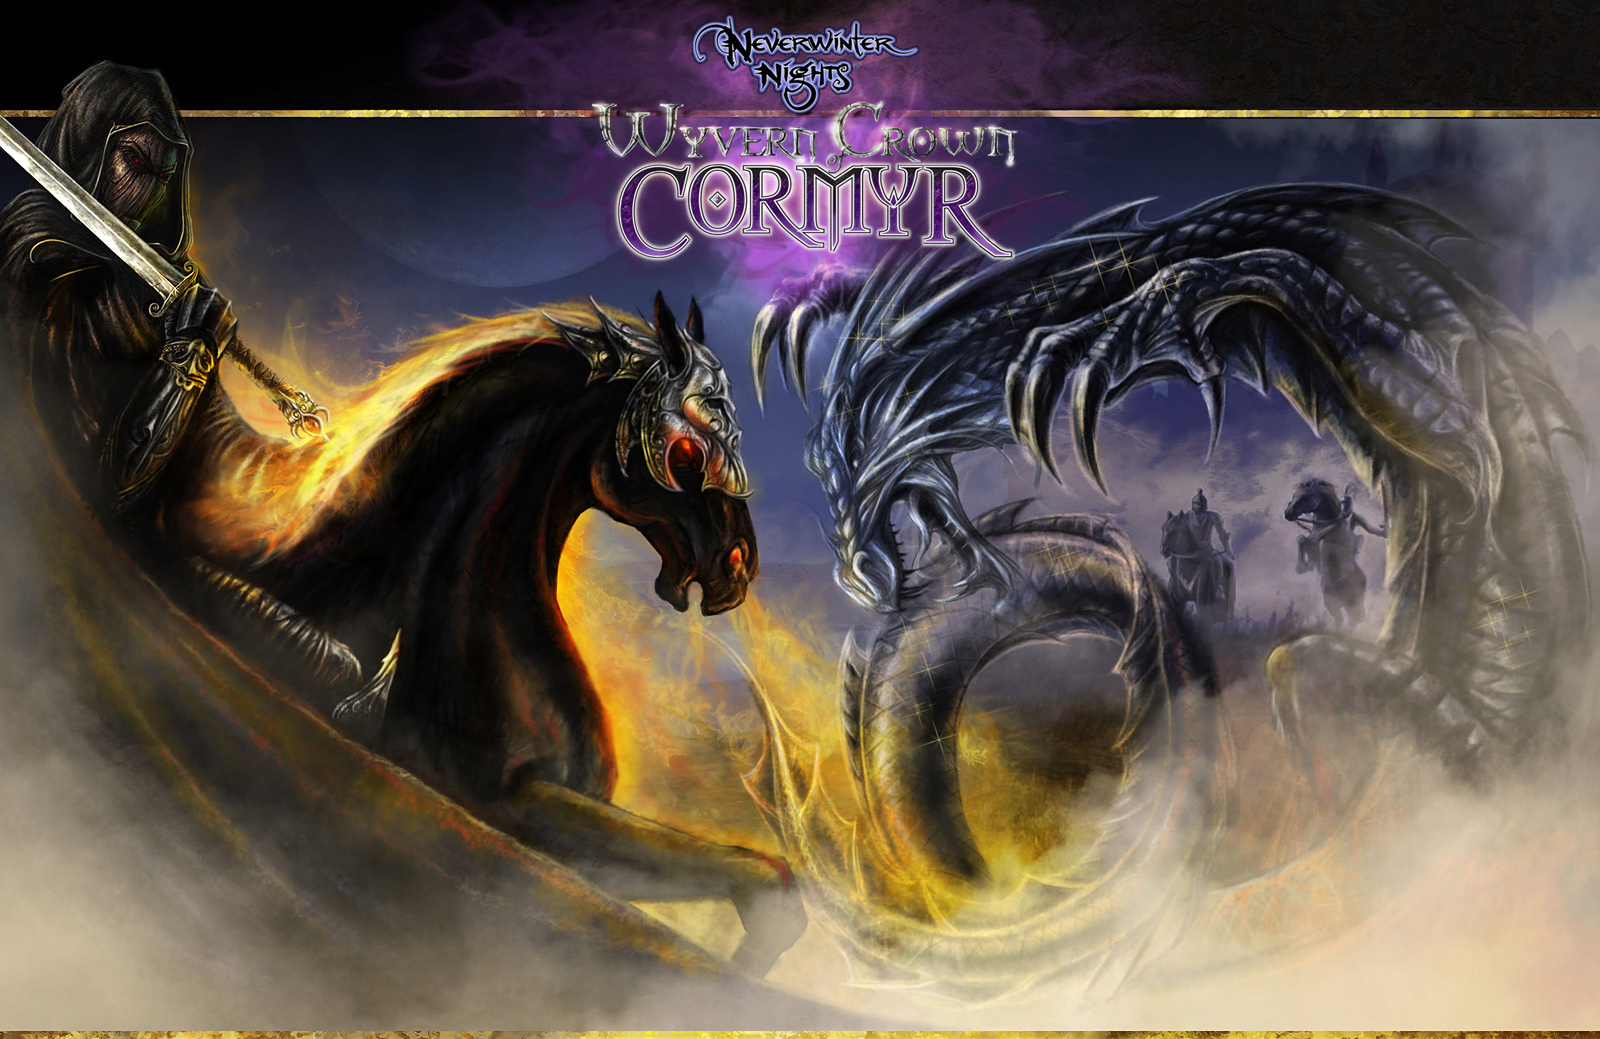 Tchos' Gaming and Modding: Neverwinter Nights 1: Wyvern Crown of Cormyr